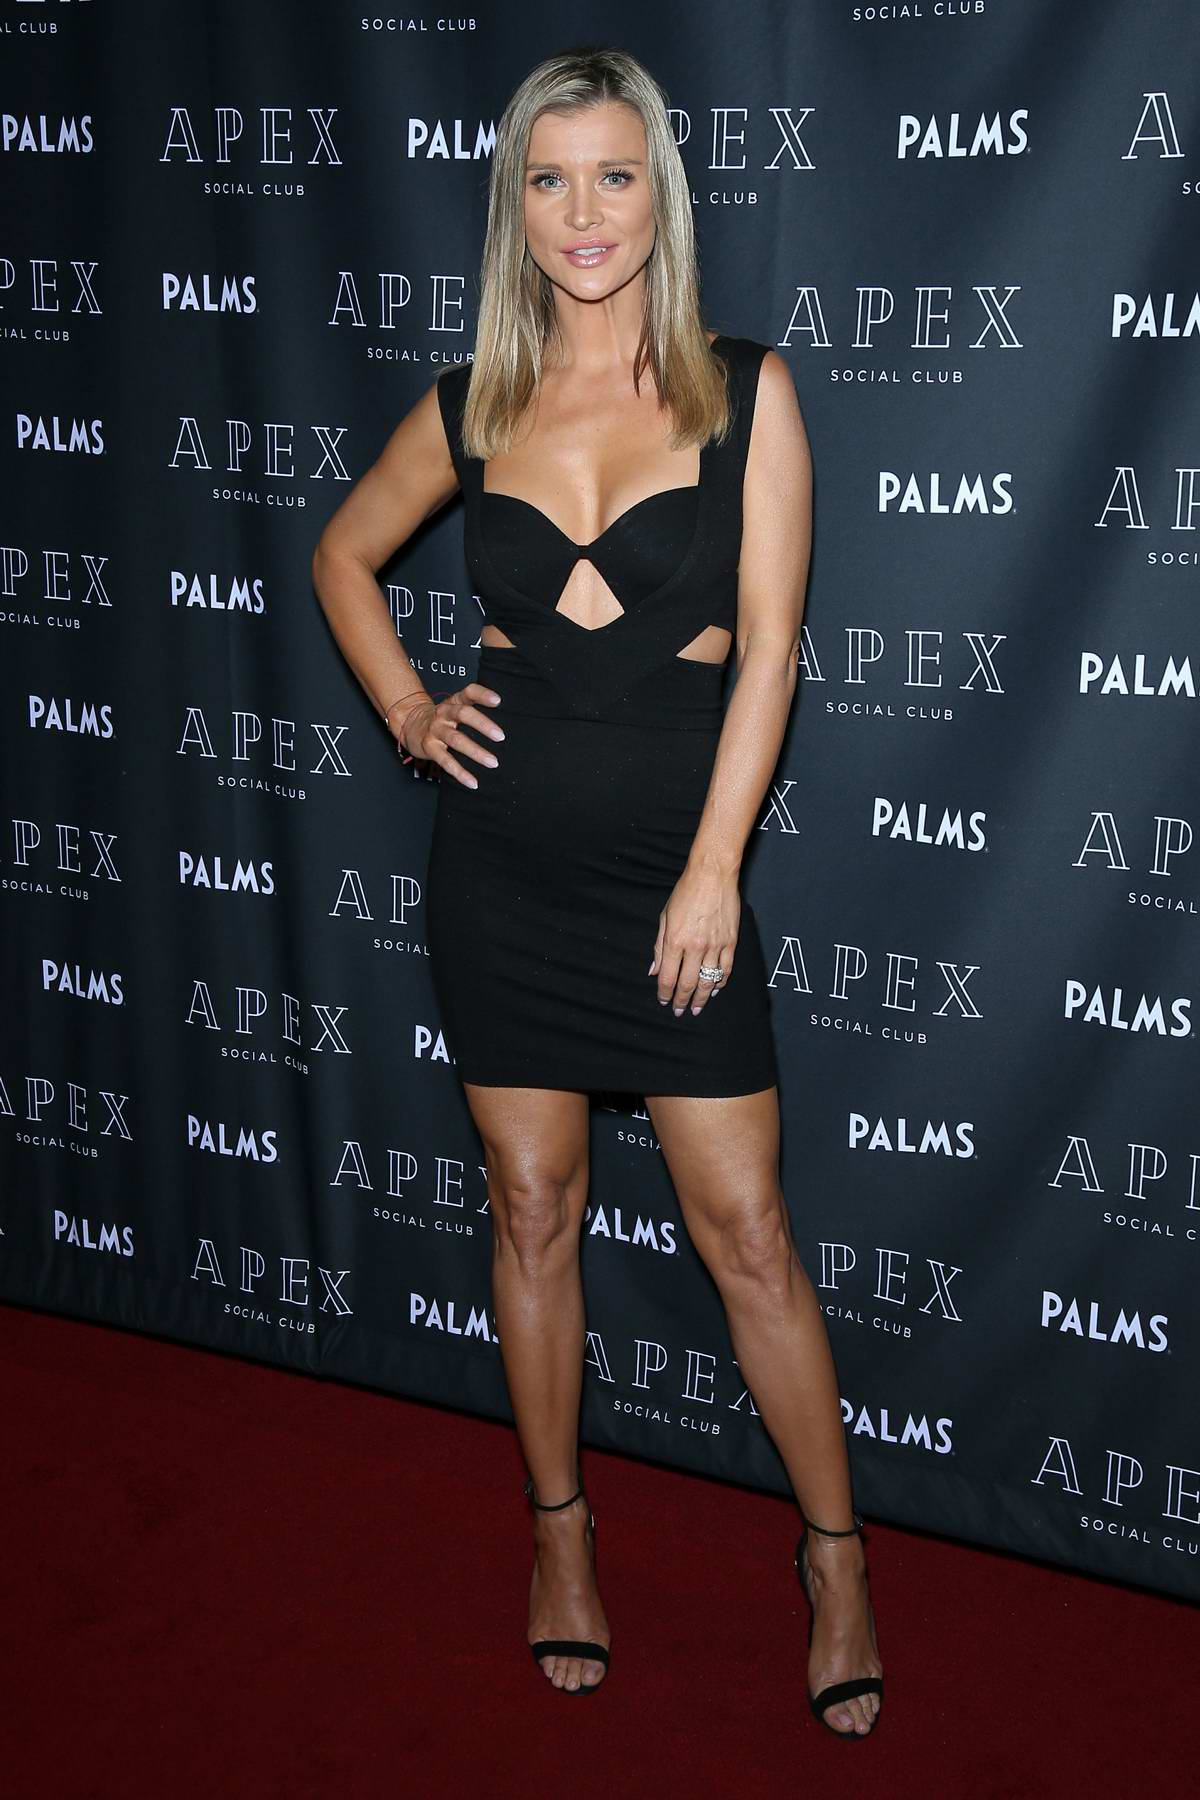 Joanna Krupa launches her skin care line 'Elphia Beauty' at Palm Resort & Casino in Las Vegas, Nevada